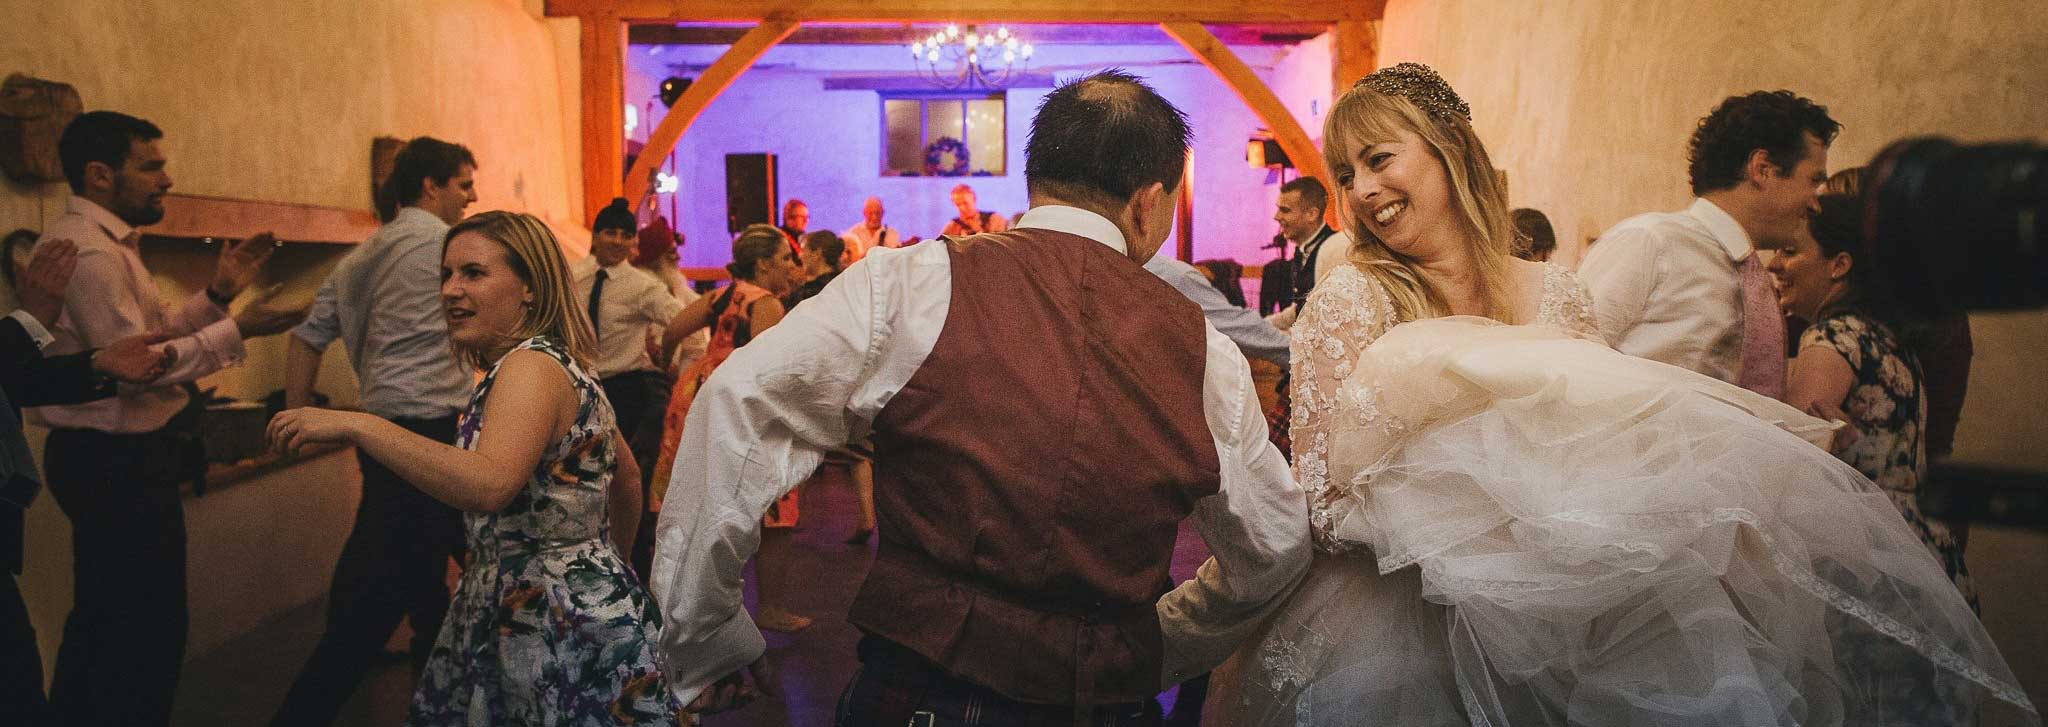 barn-dance-weddings